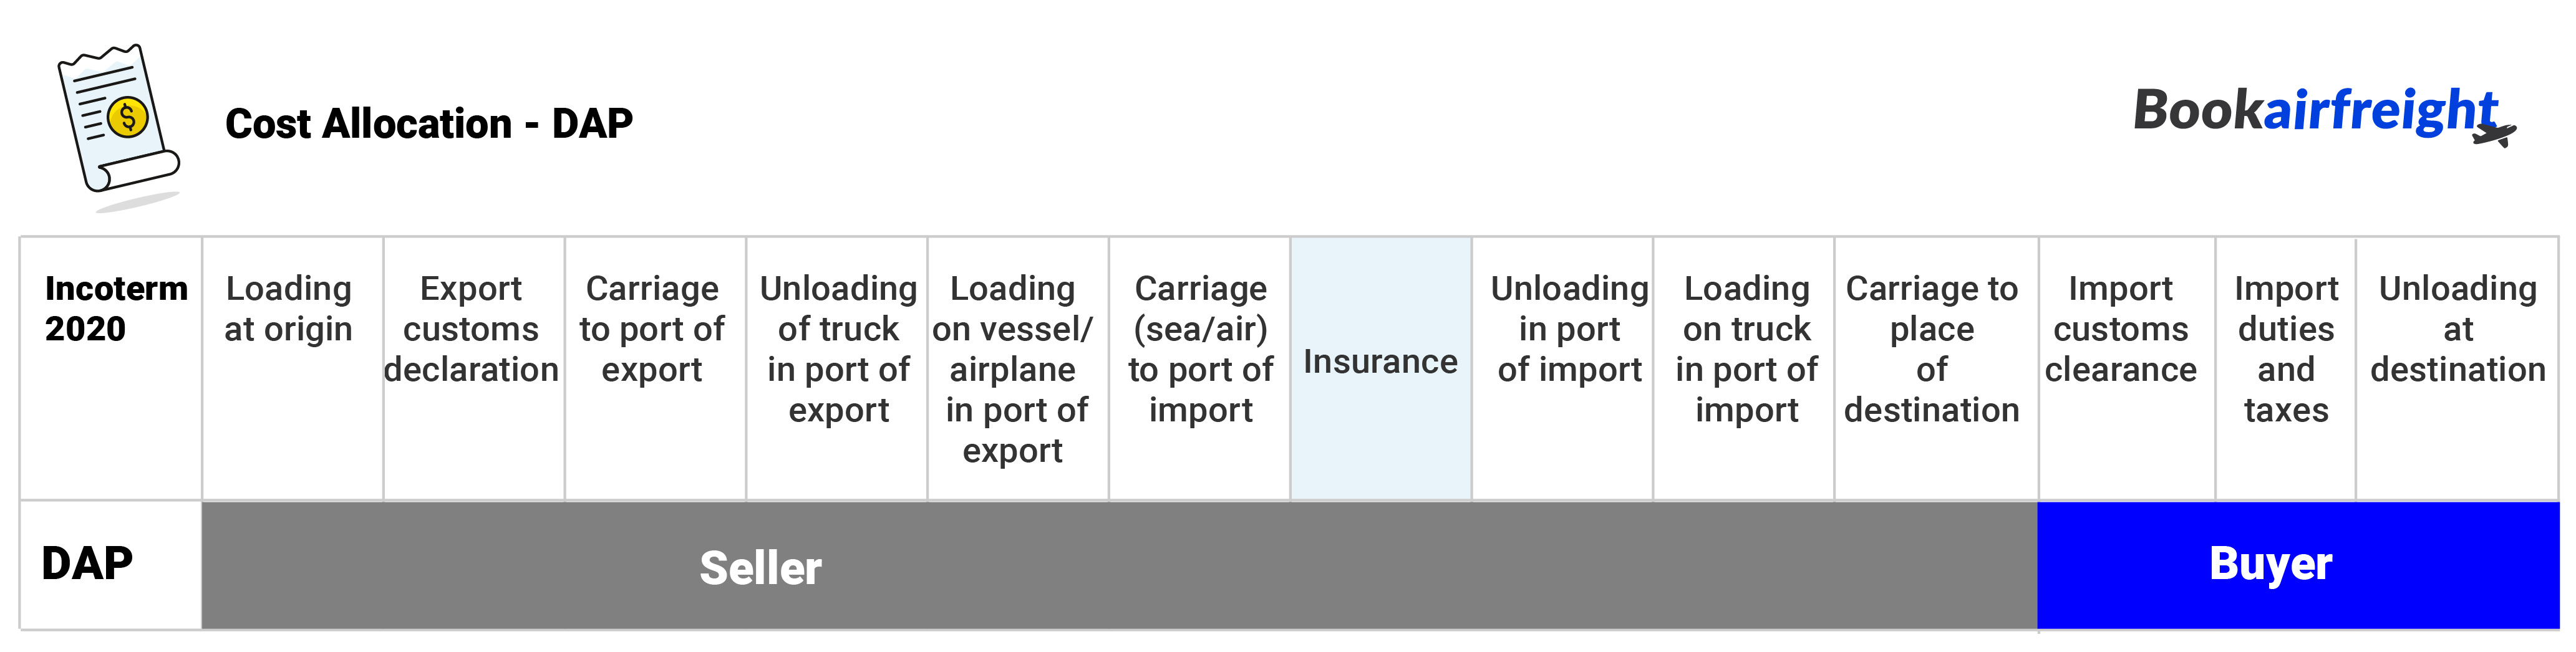 Bookairfreight - Cost allocation - who should pay what under DAP